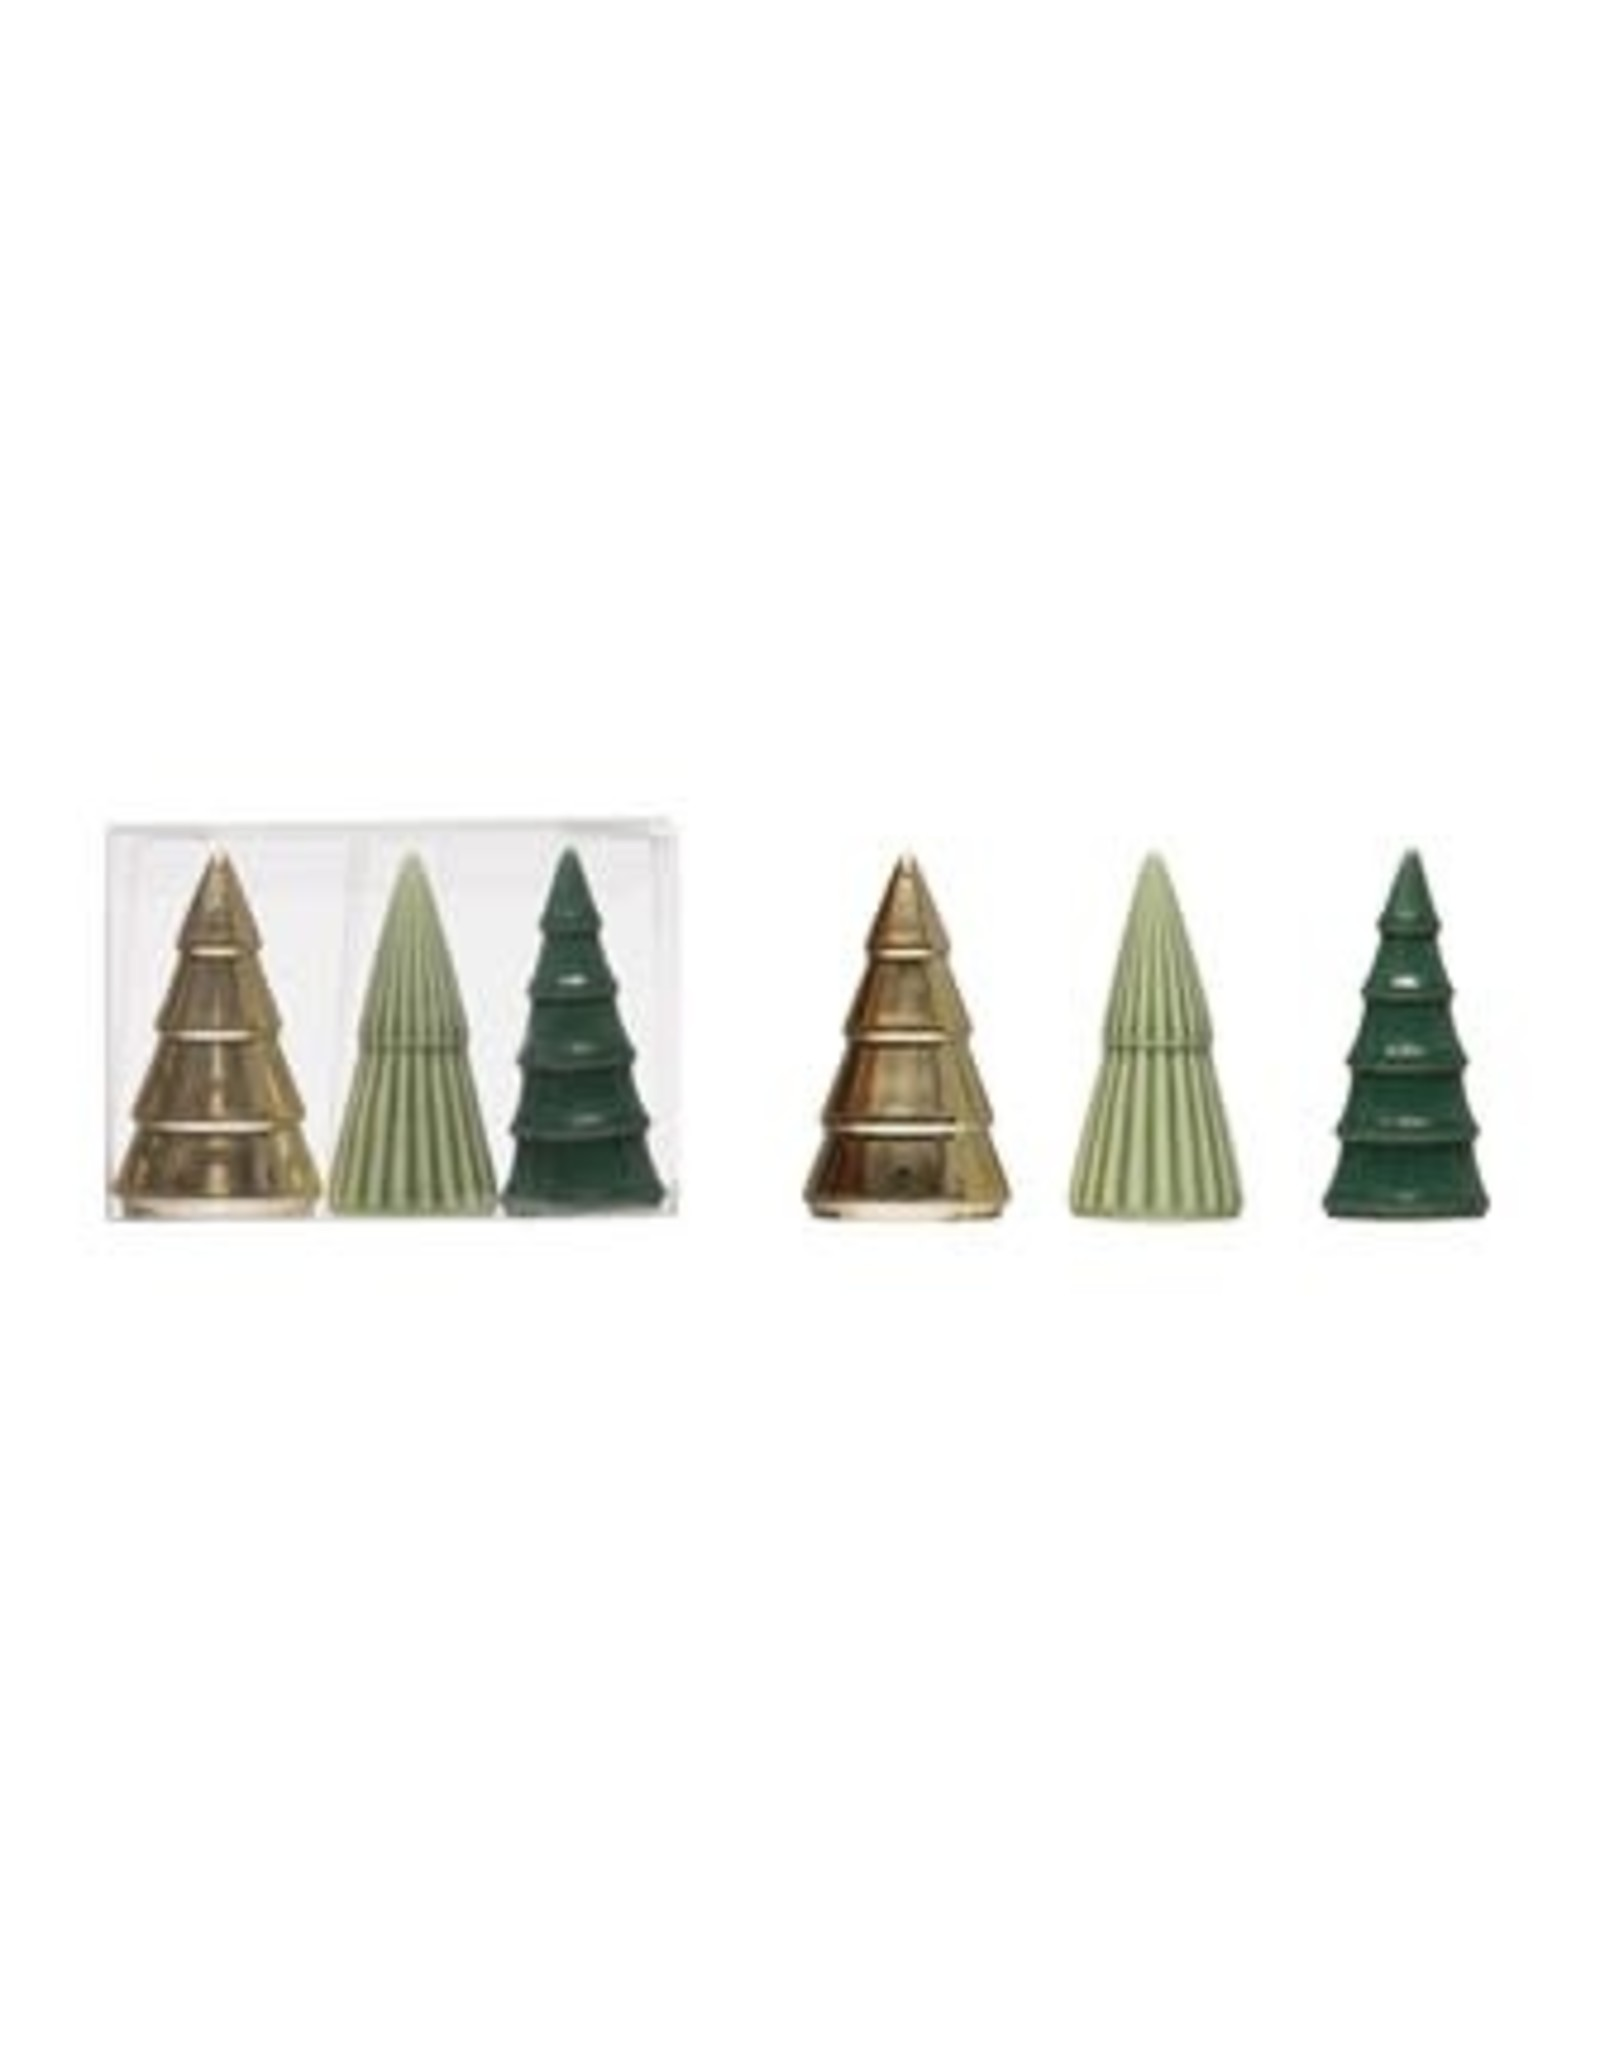 Porcelain Trees, Green Gold and Sage, set of 3